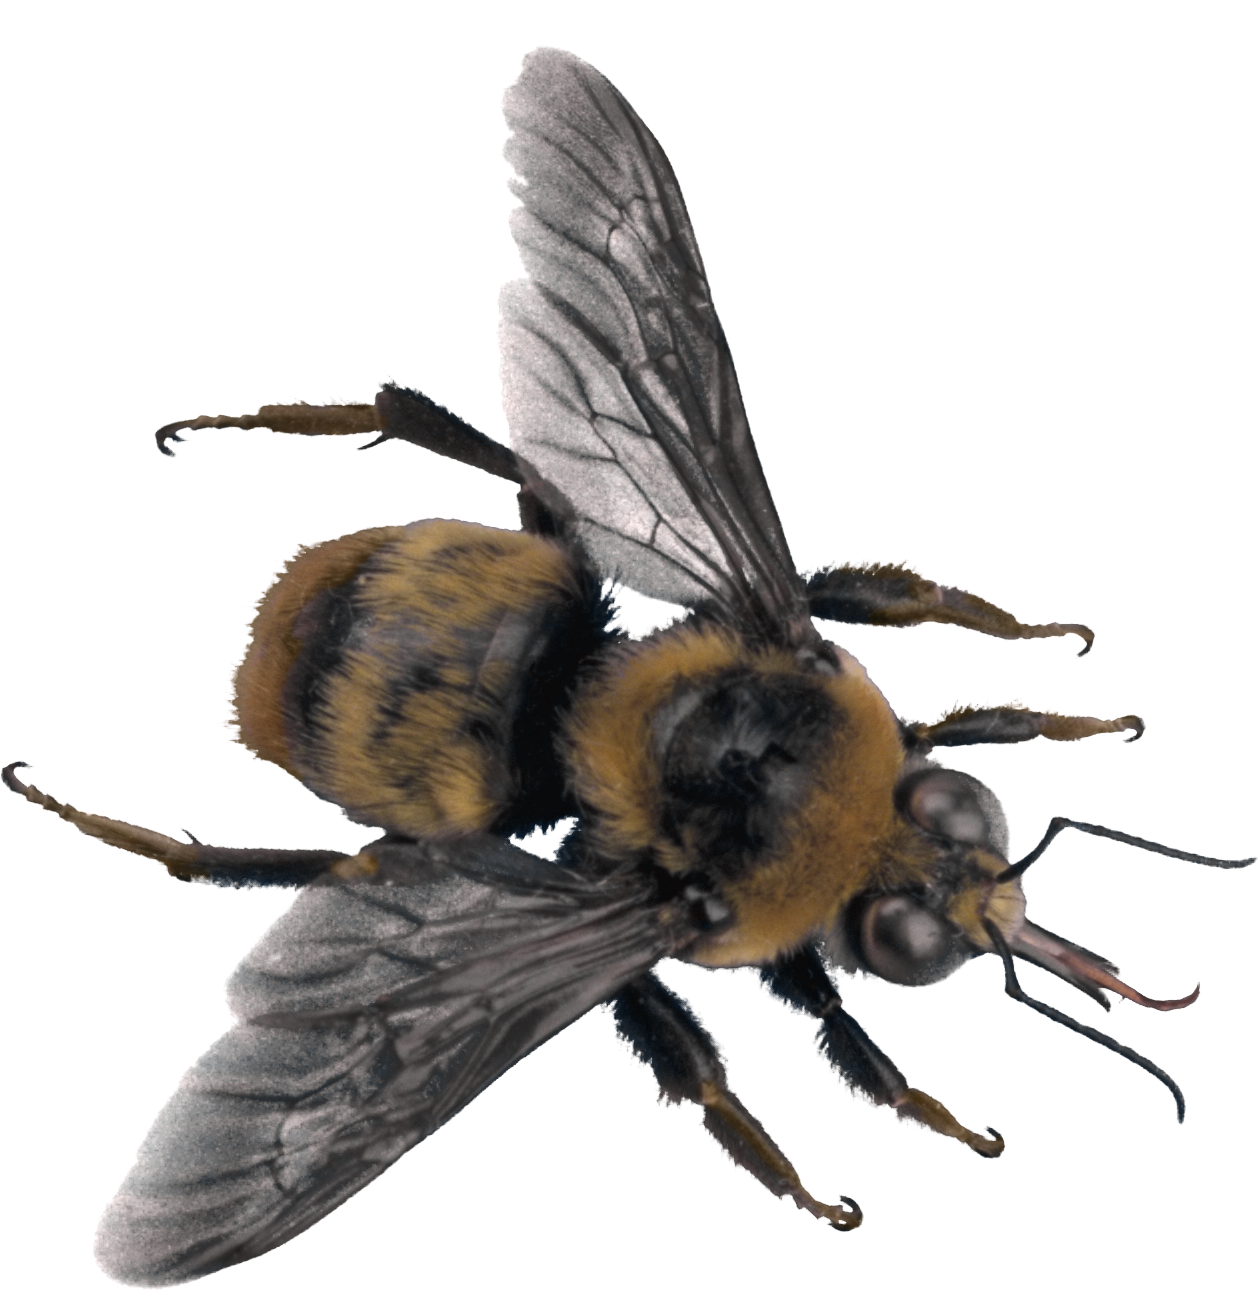 Download Png Bee High-quality image #45413